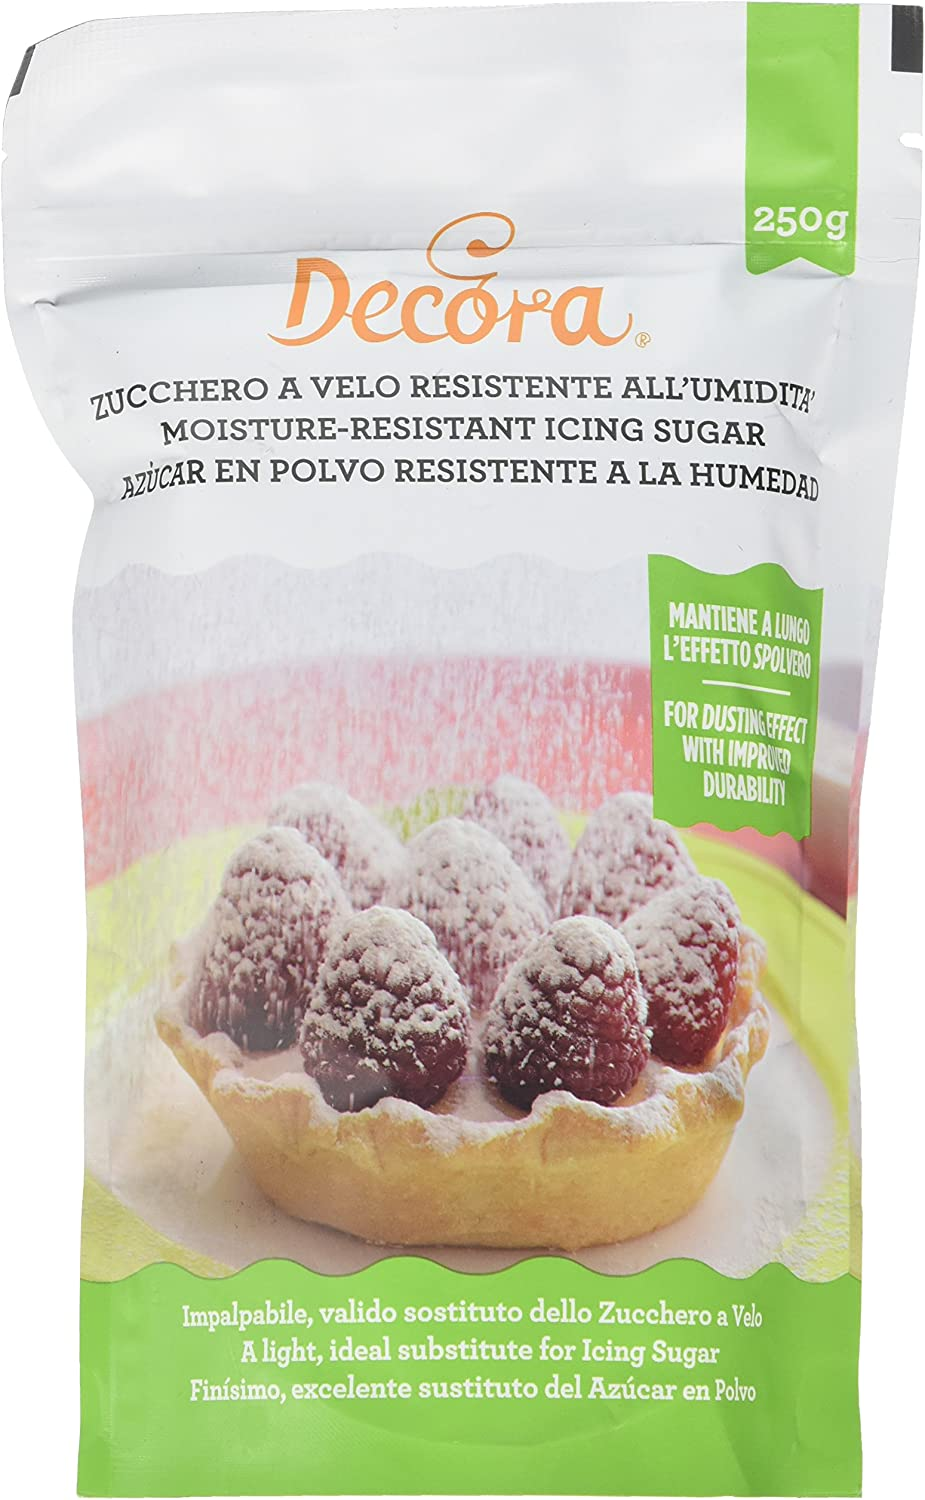 Decora 0300213 Zucchero Decorativo Resistente All Umidita 250 G Amazon It Alimentari E Cura Della Casa